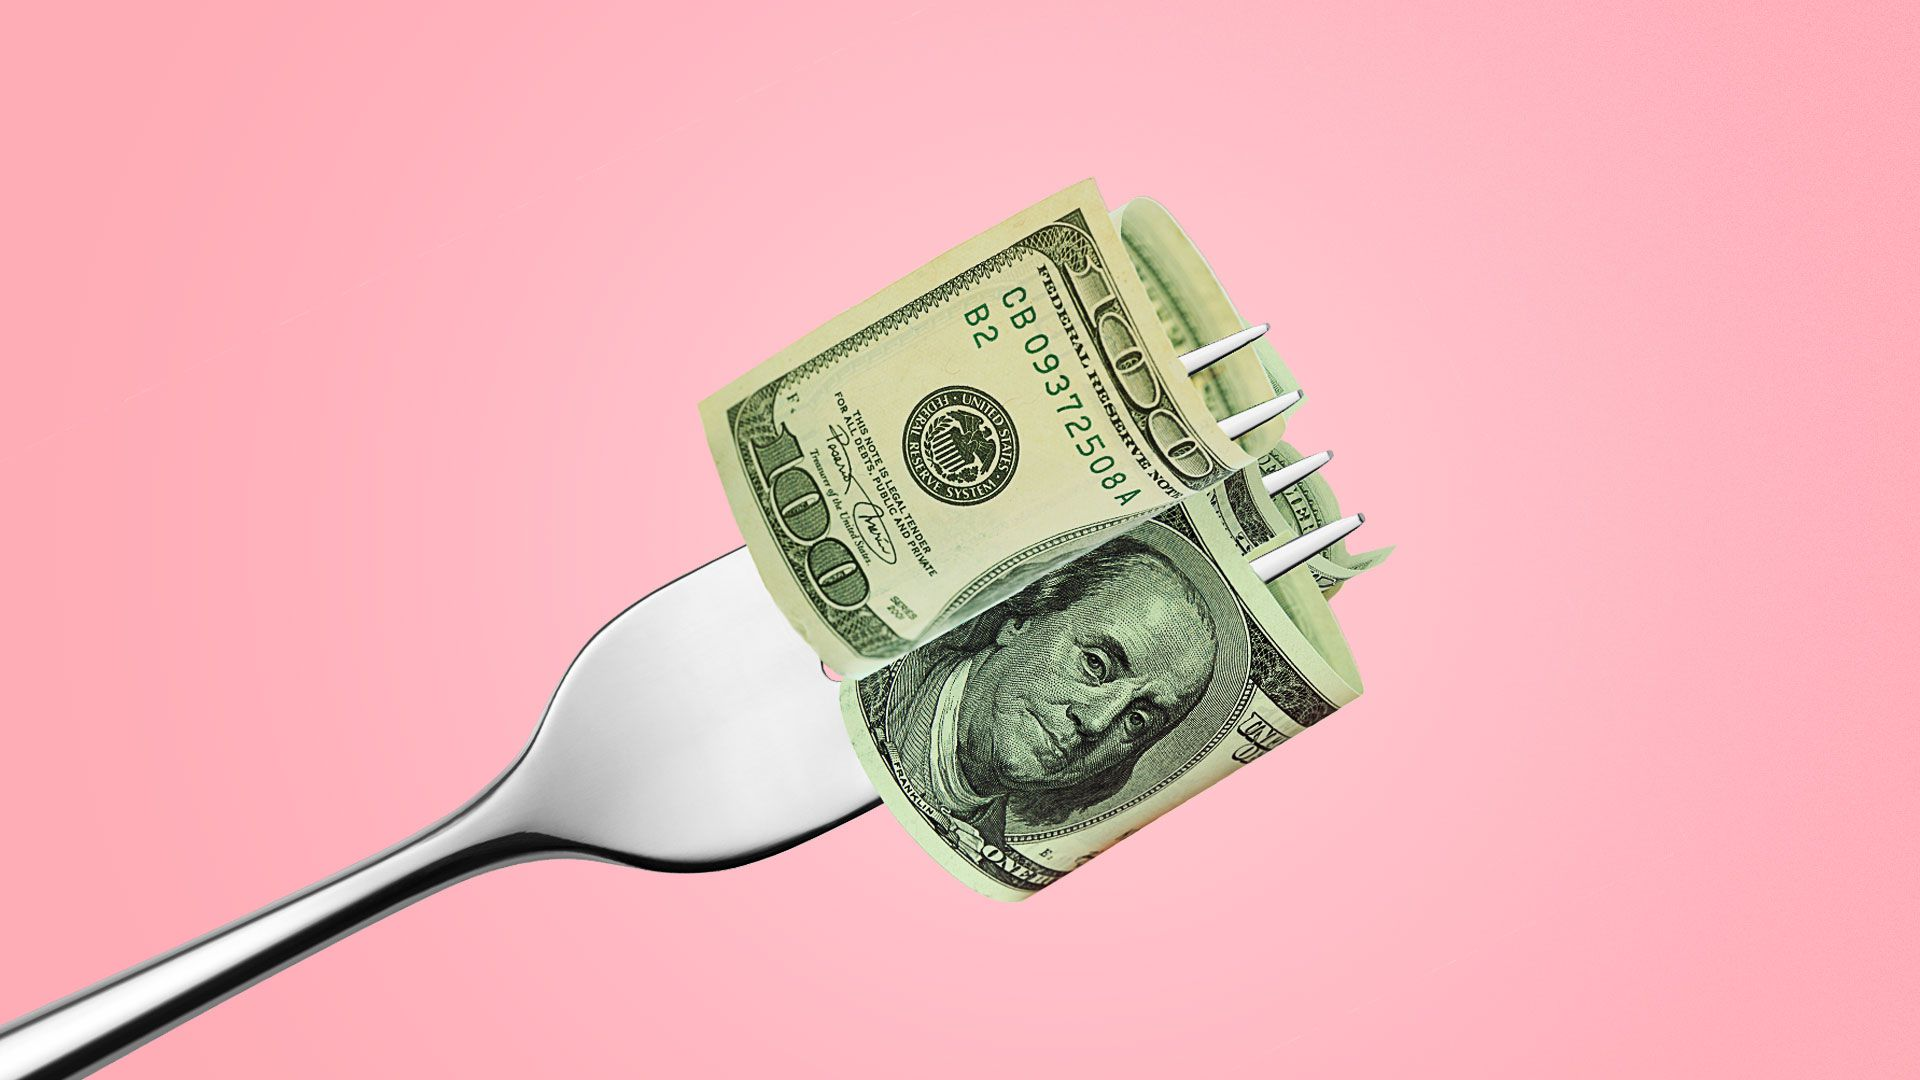 Illustration of dollar bills being twirled on a fork.